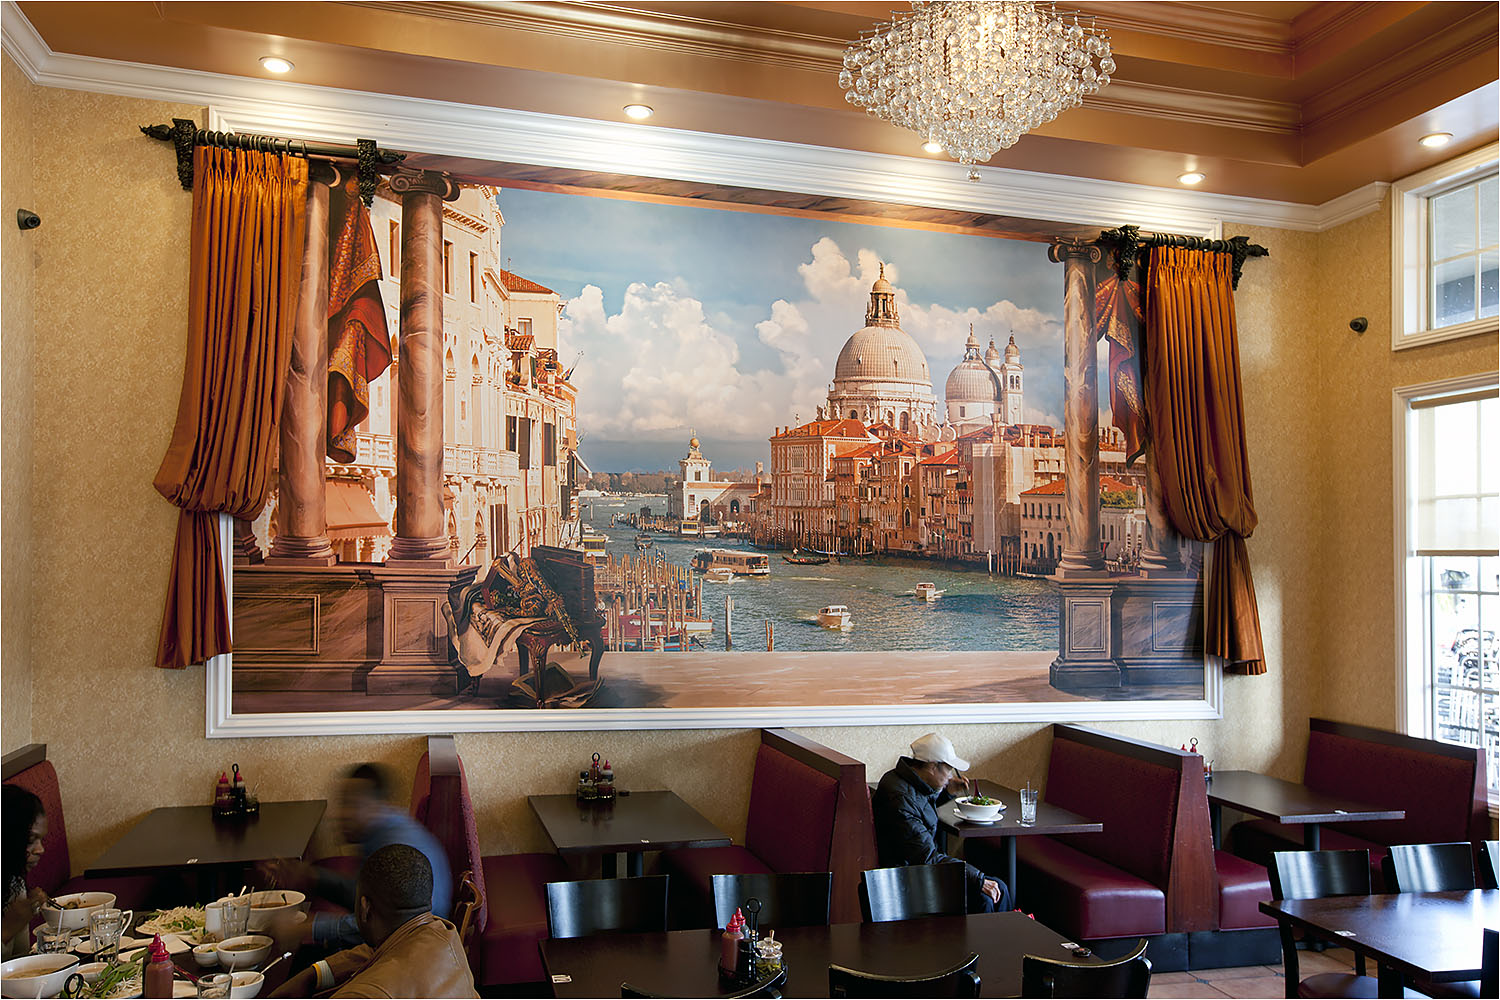 Printed mural made on a durable and washable commercial grade wall-covering medium.  This mural is a combination of photo, hand-painted and digital art. A good example of a photo mural in a restaurant.